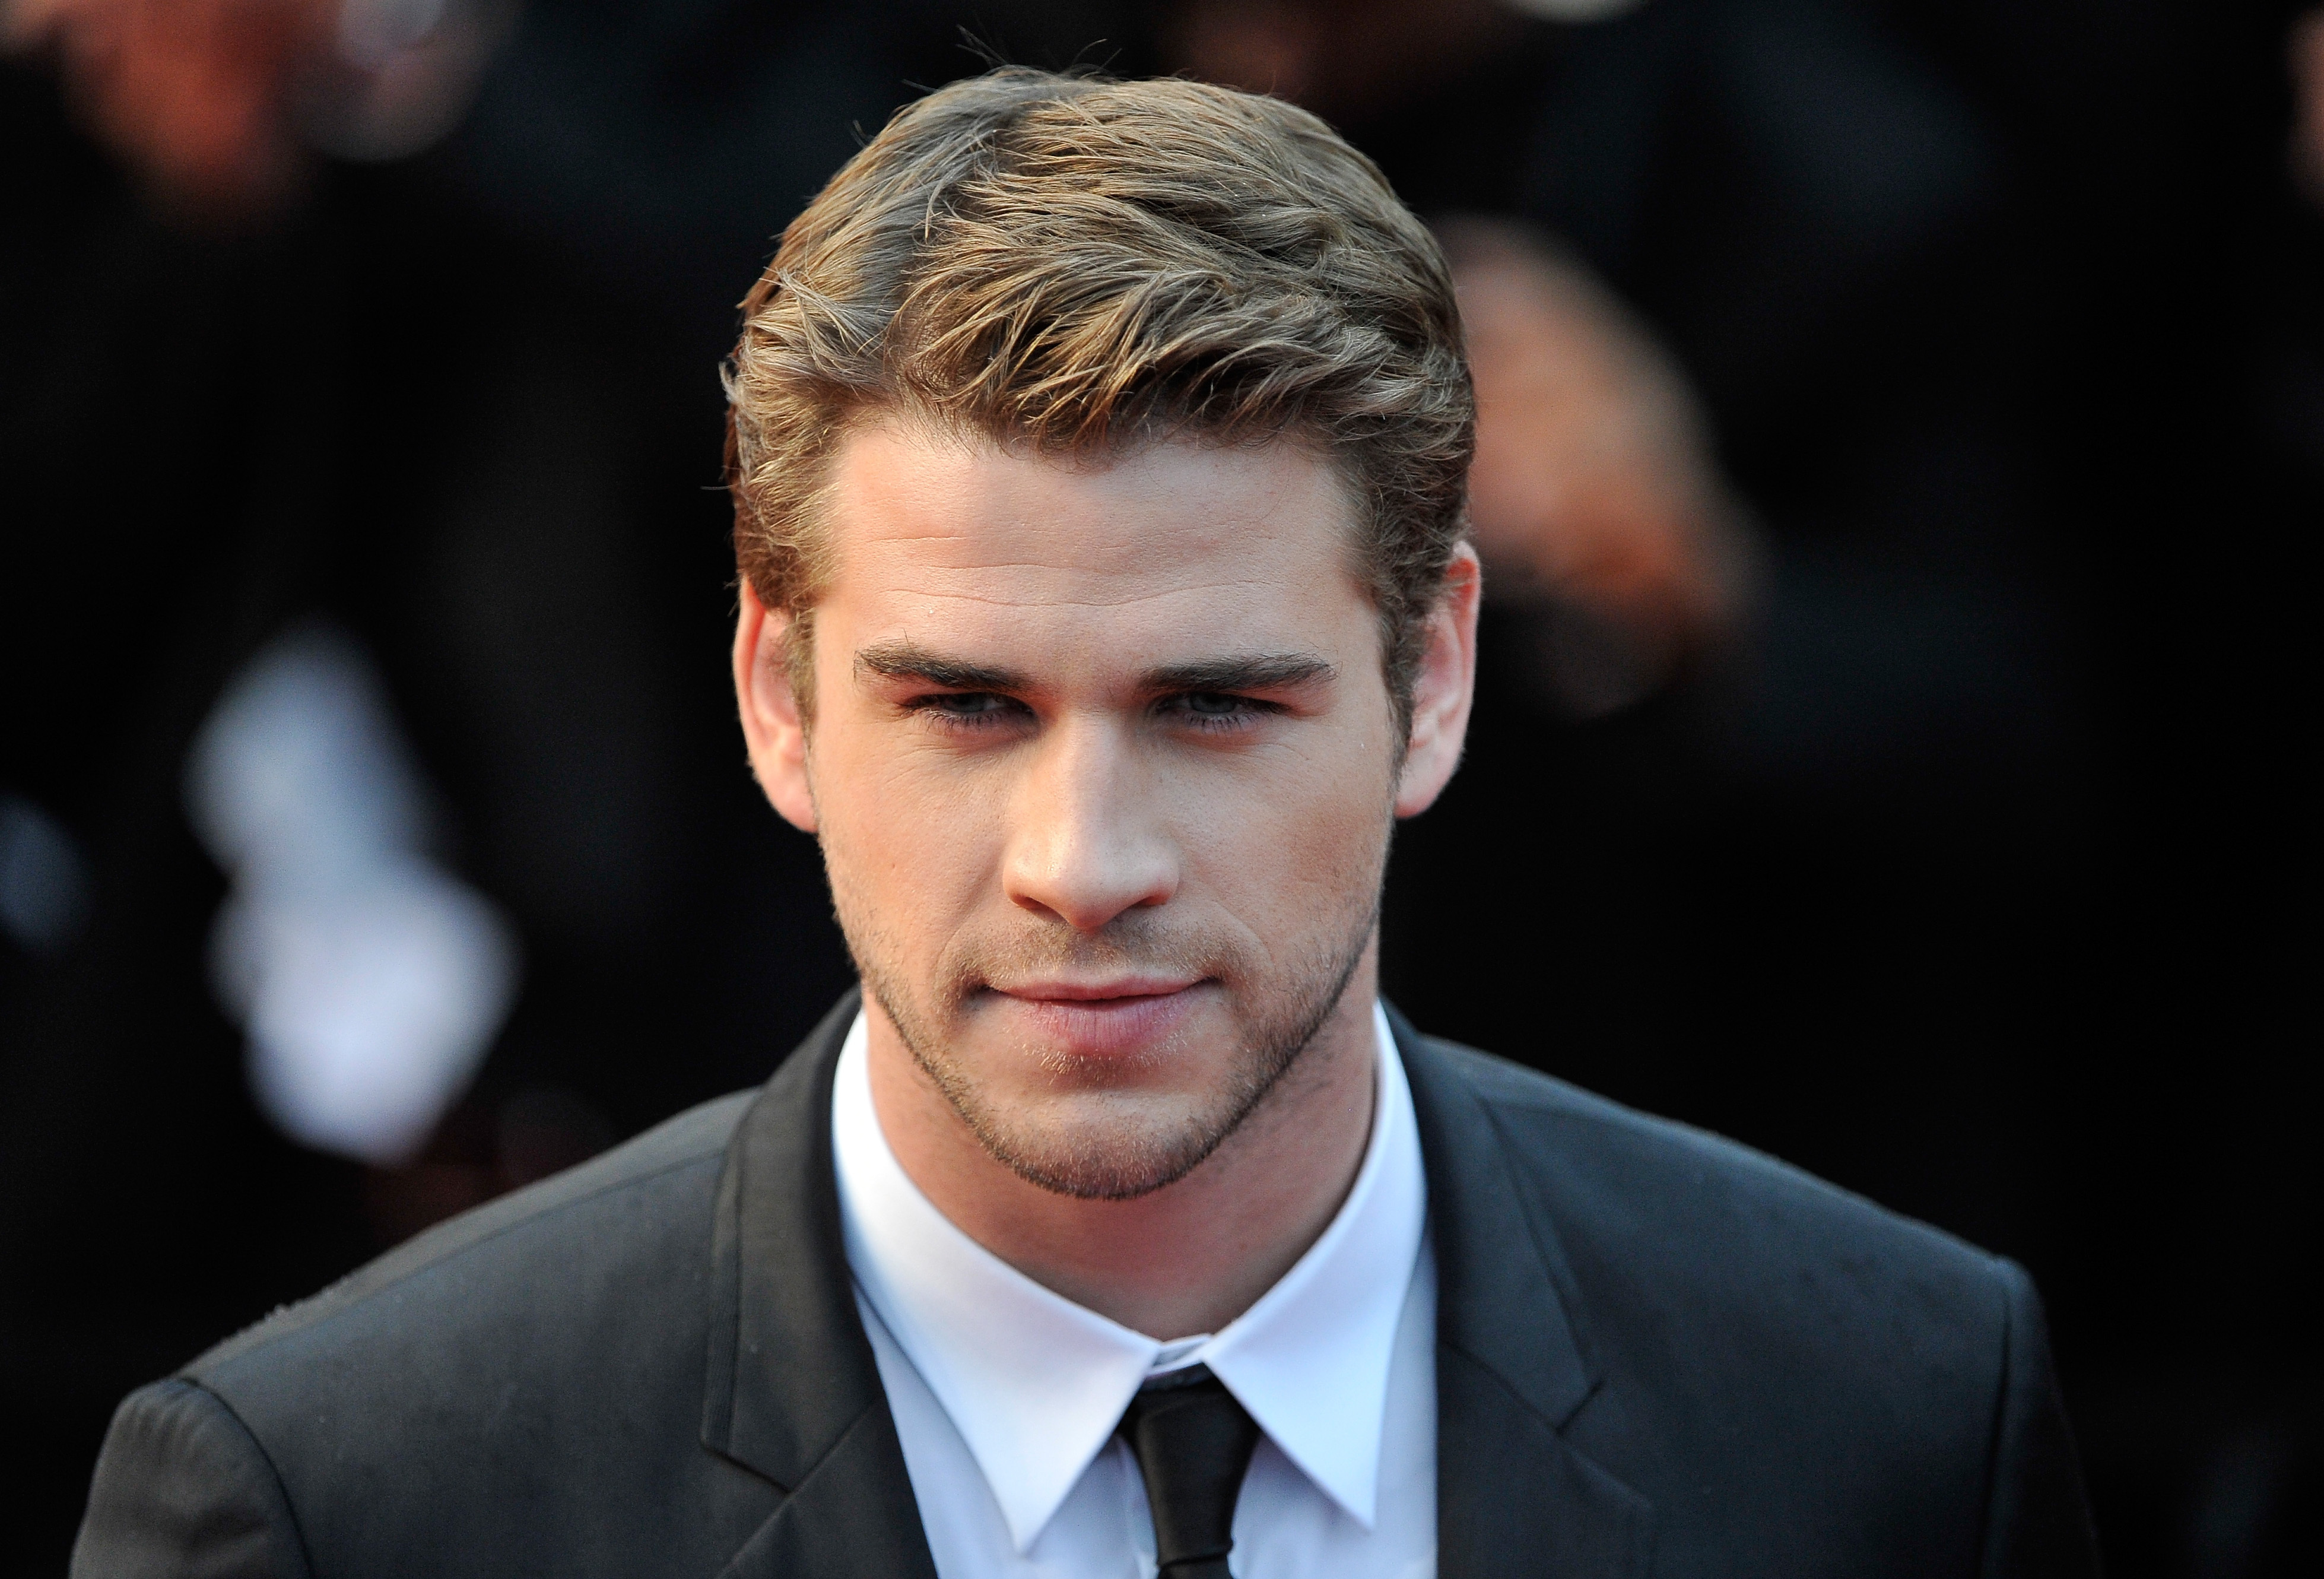 Liam Hemsworth Wallpapers High Resolution and Quality Download